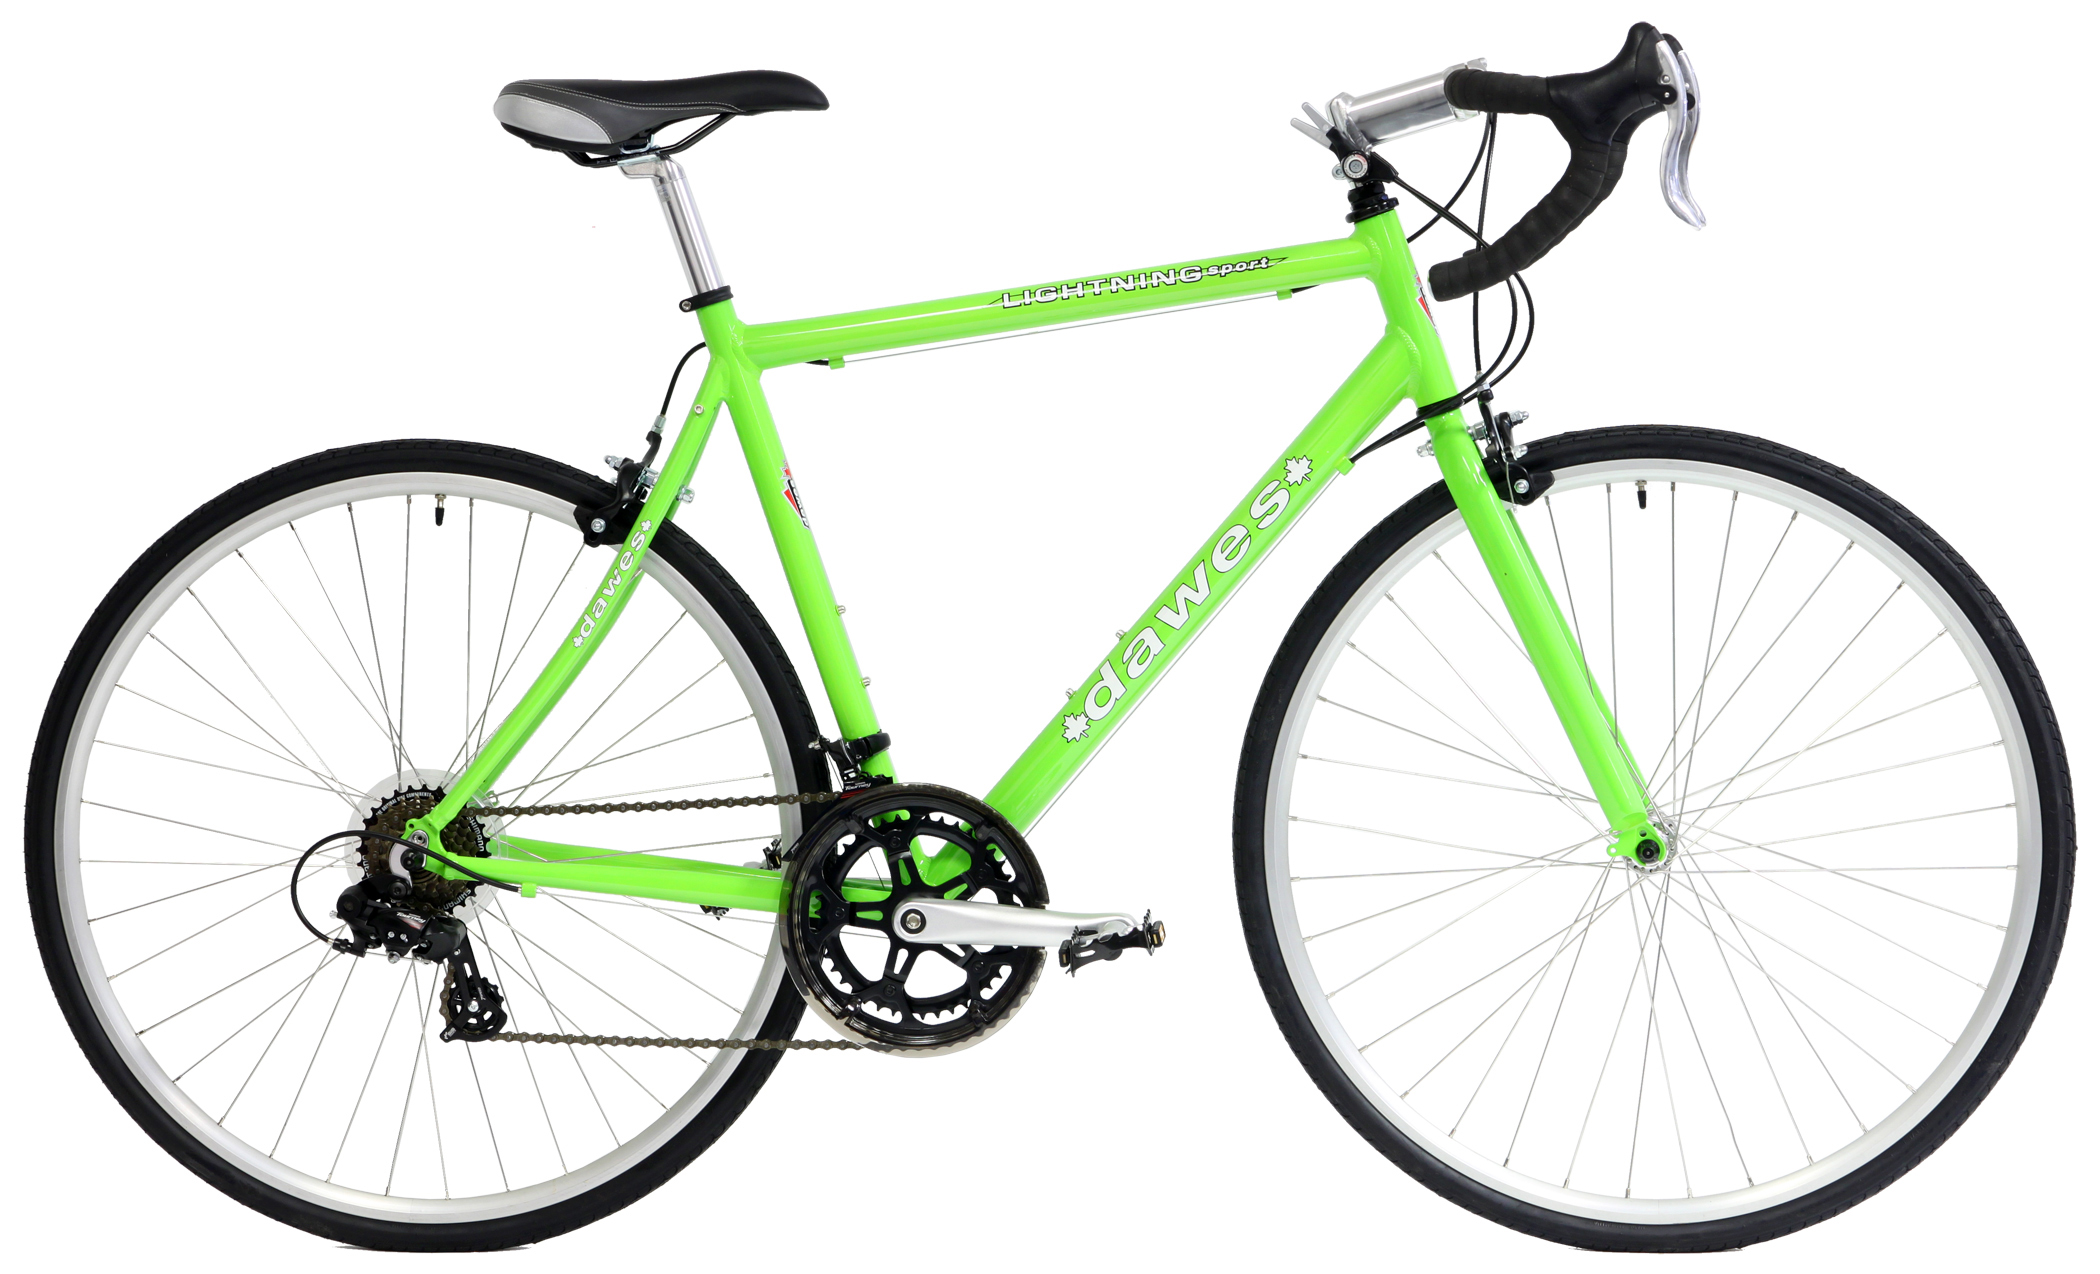 LIGHTNING SPORT   - SHIMANO 14sp ALUMINUM ROAD BIKE